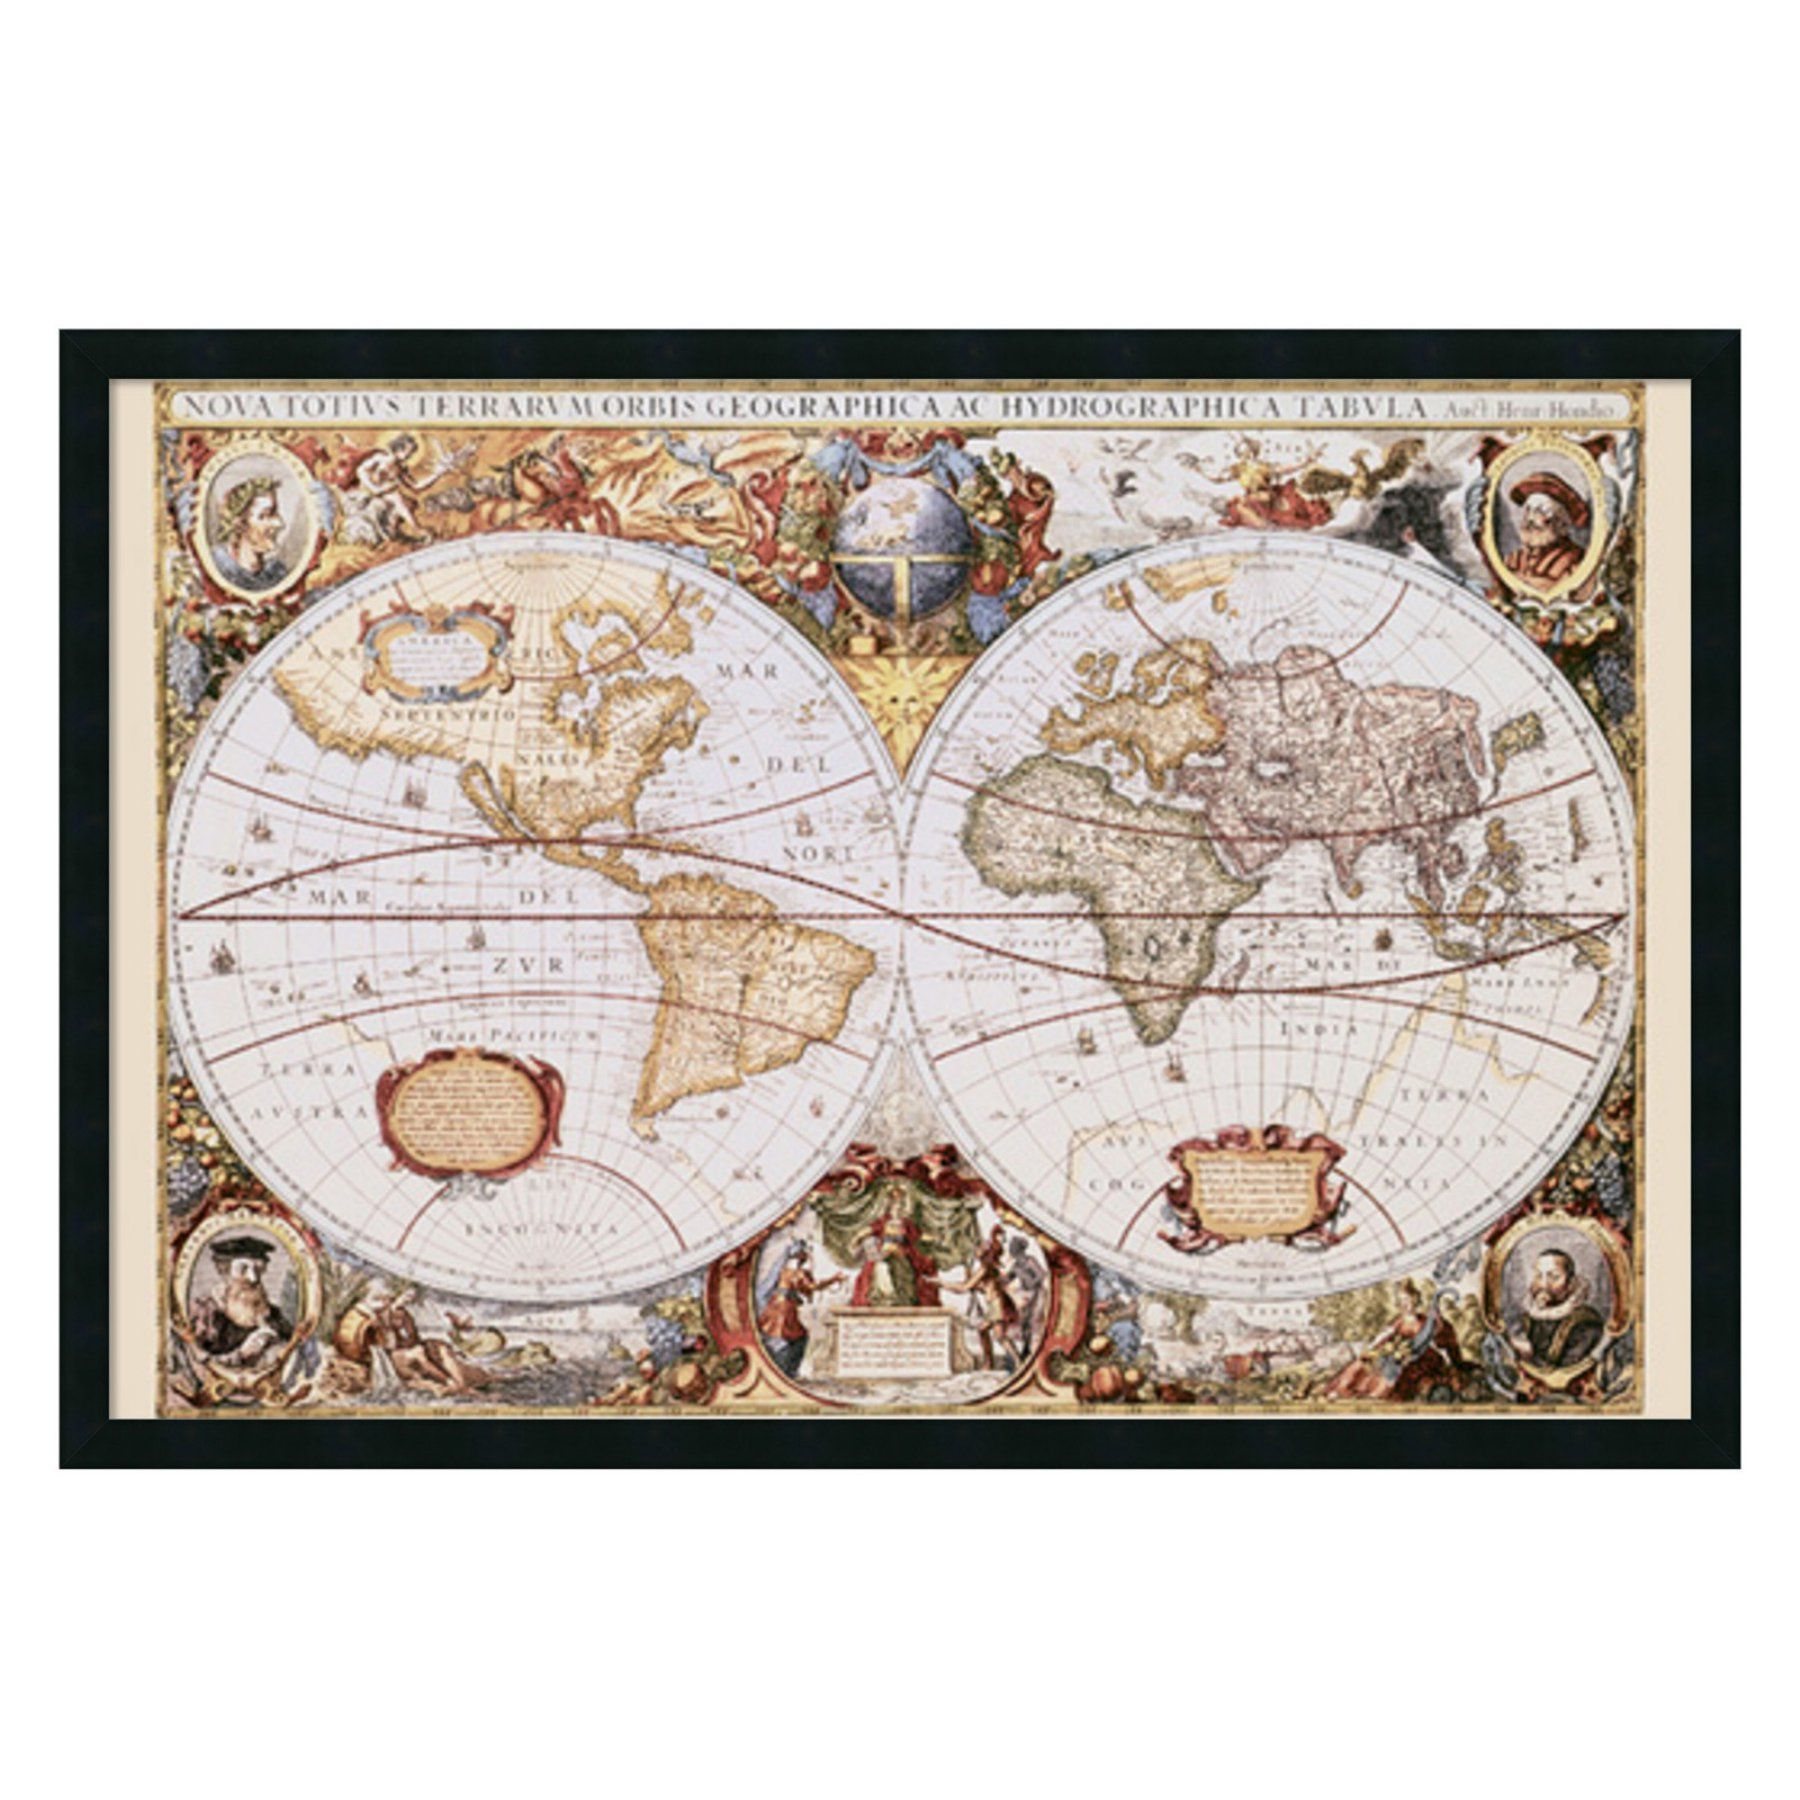 Map of the world framed wall art by hondio jansson 374w x 254h map of the world framed wall art by hondio jansson 374w x 254 gumiabroncs Image collections